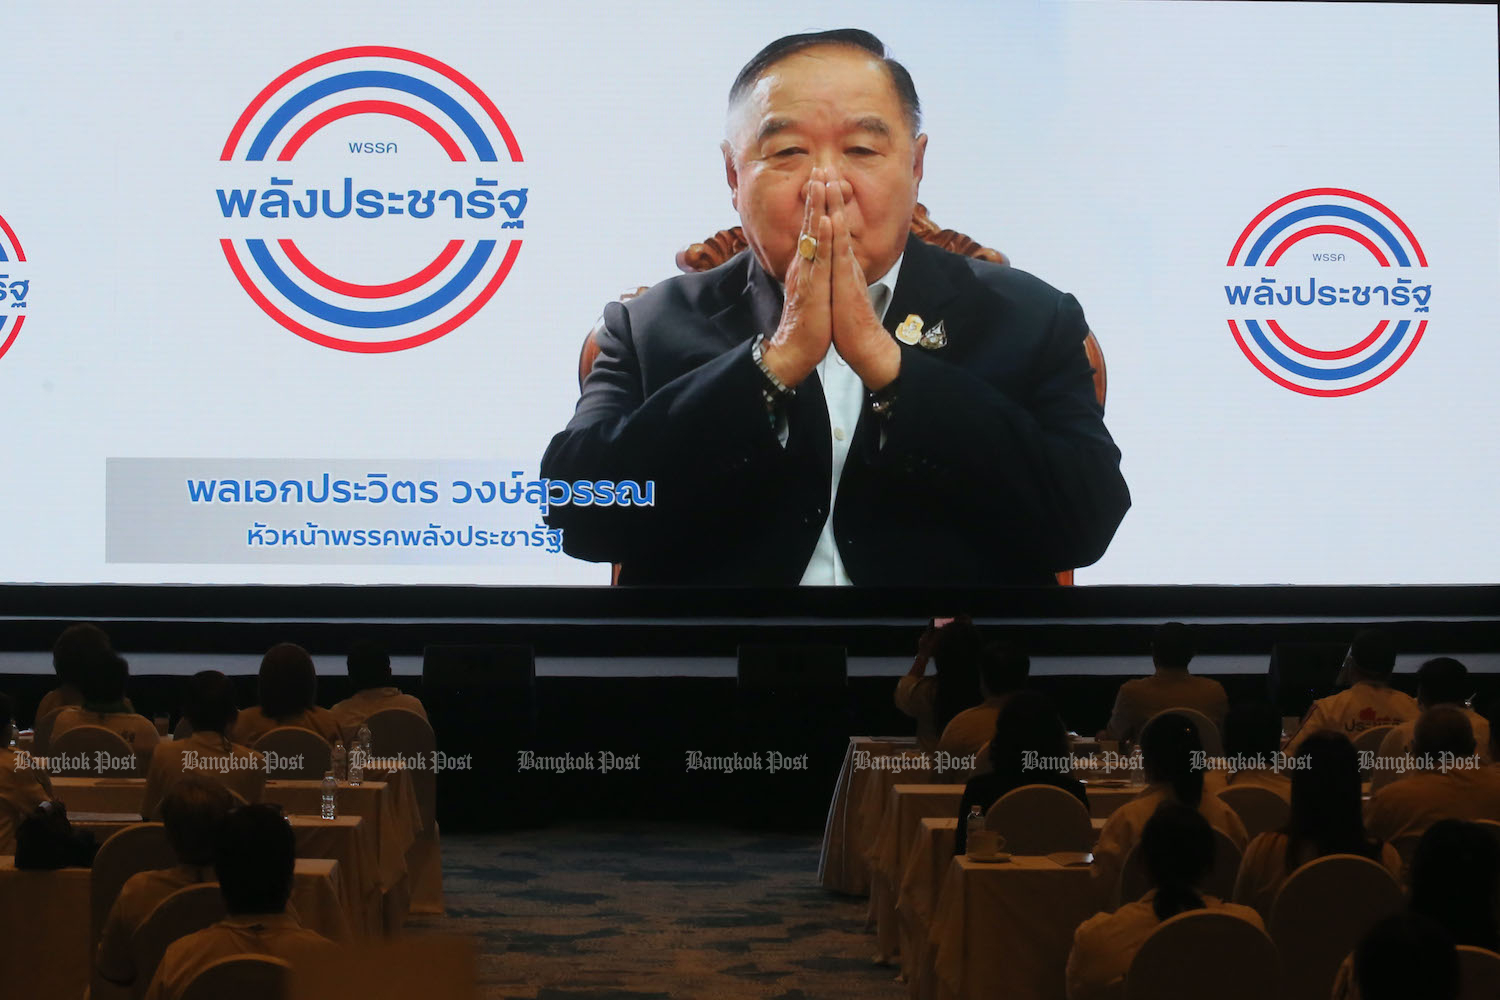 Deputy Prime Minister Prawit Wongsuwon denies that his family had influence over the decision to drop the manslaughter charge against Vorayuth Yoovidhya in June. (Bangkok Post photo)